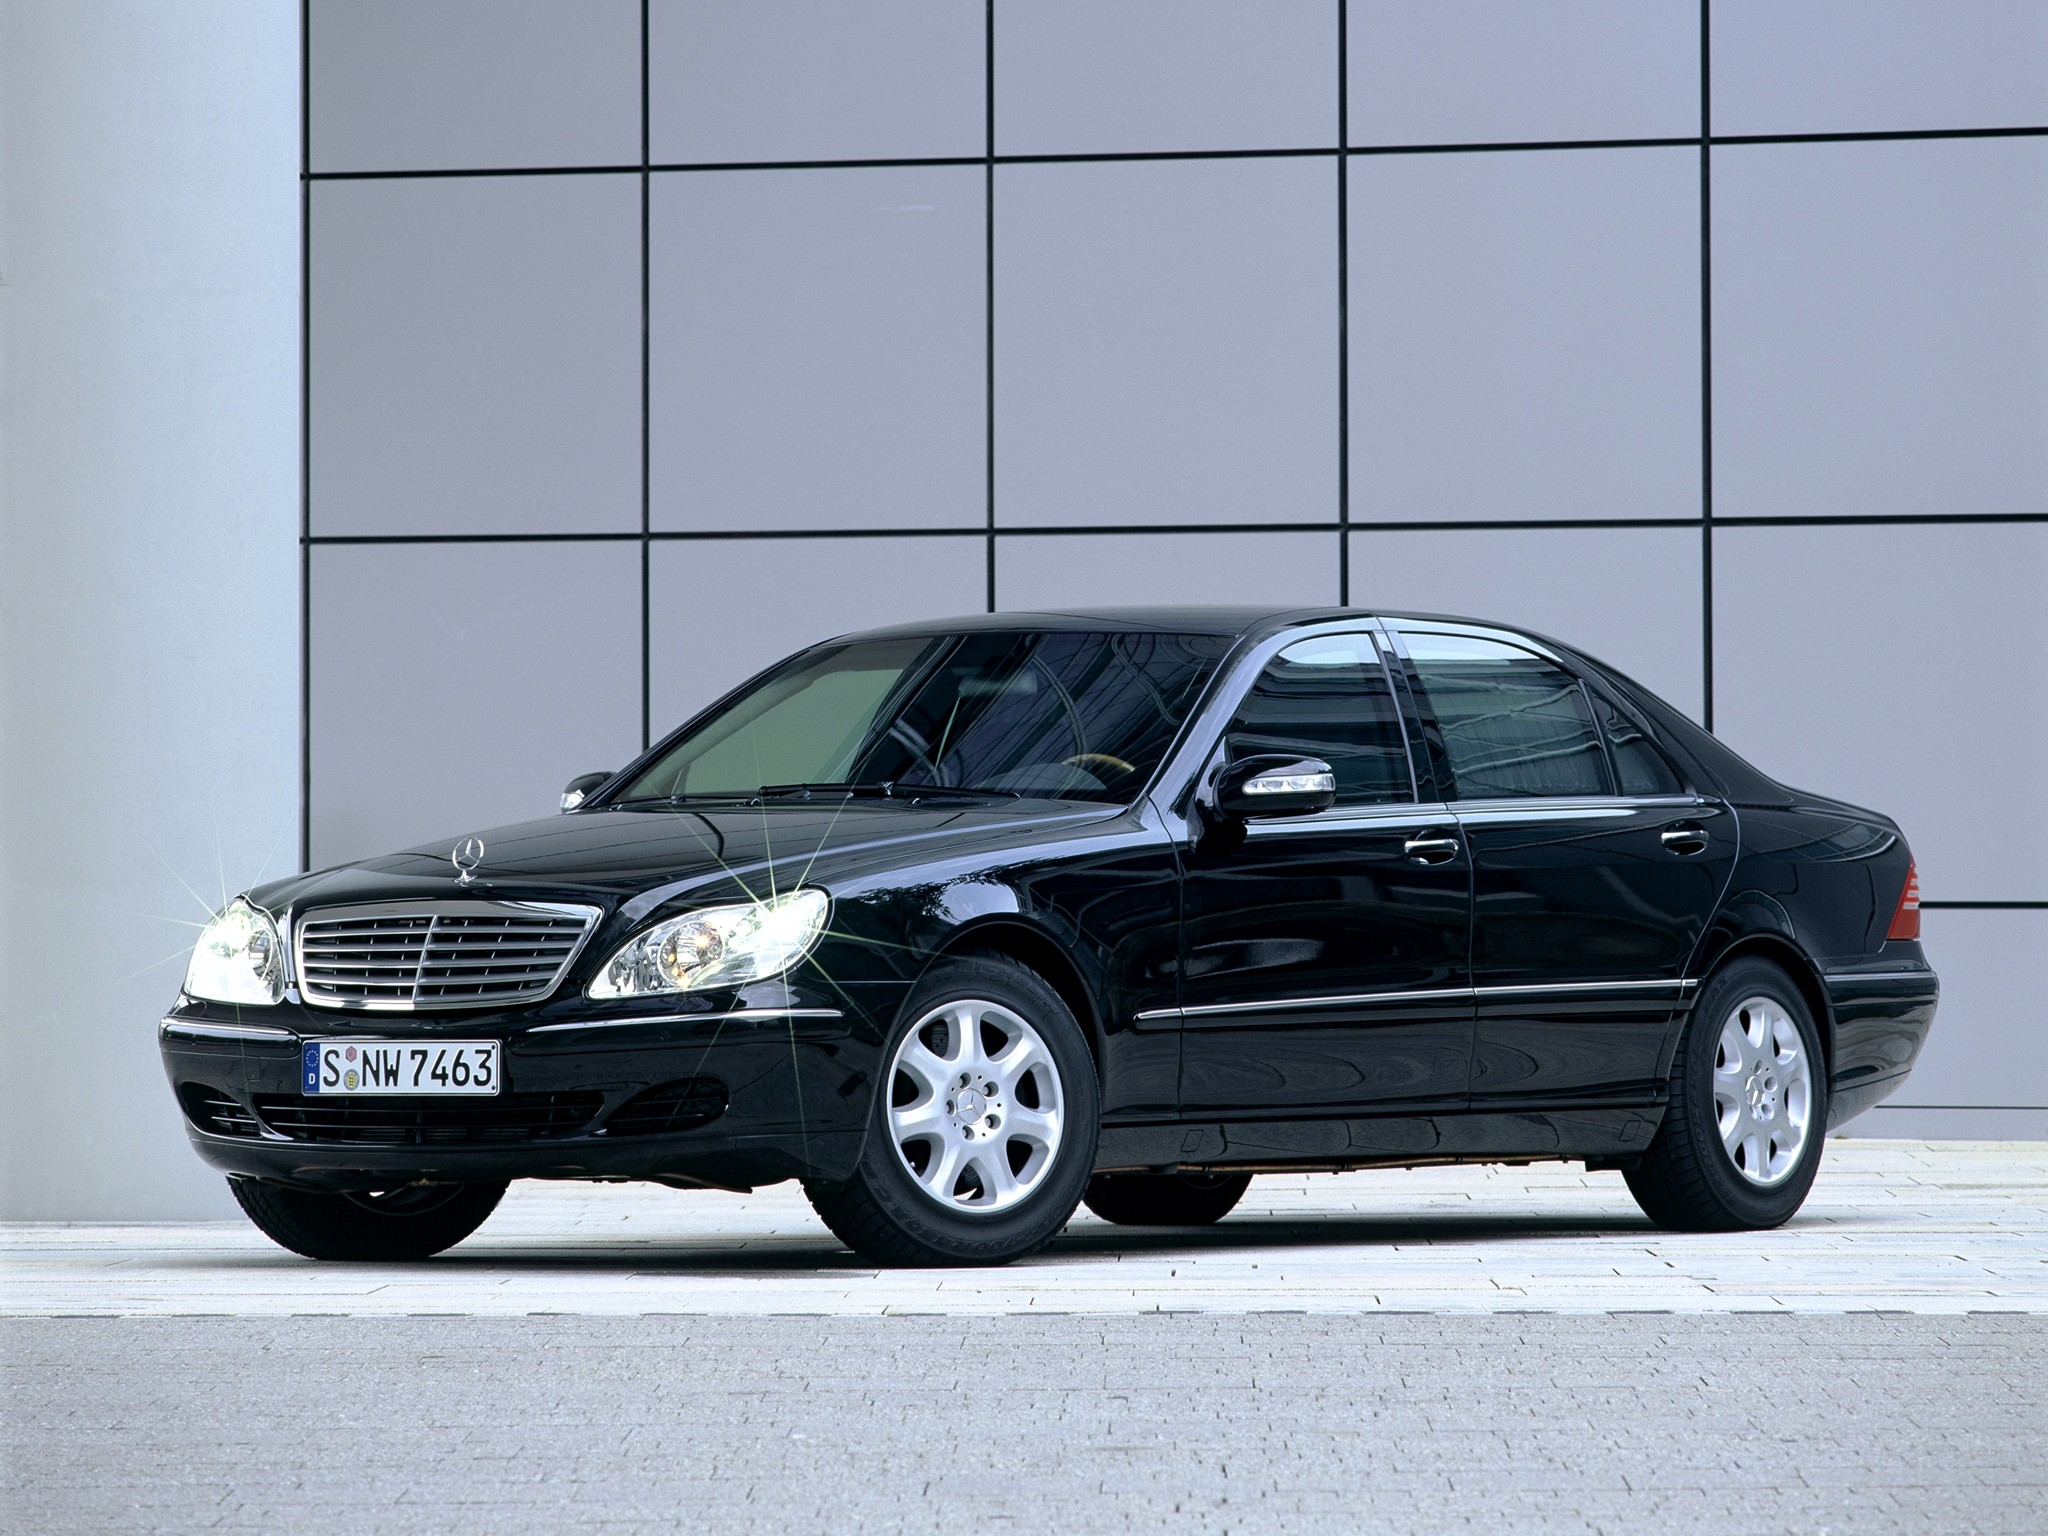 2002 armored mercedes benz s klasse guard w220 luxury for Mercedes benz e guard price